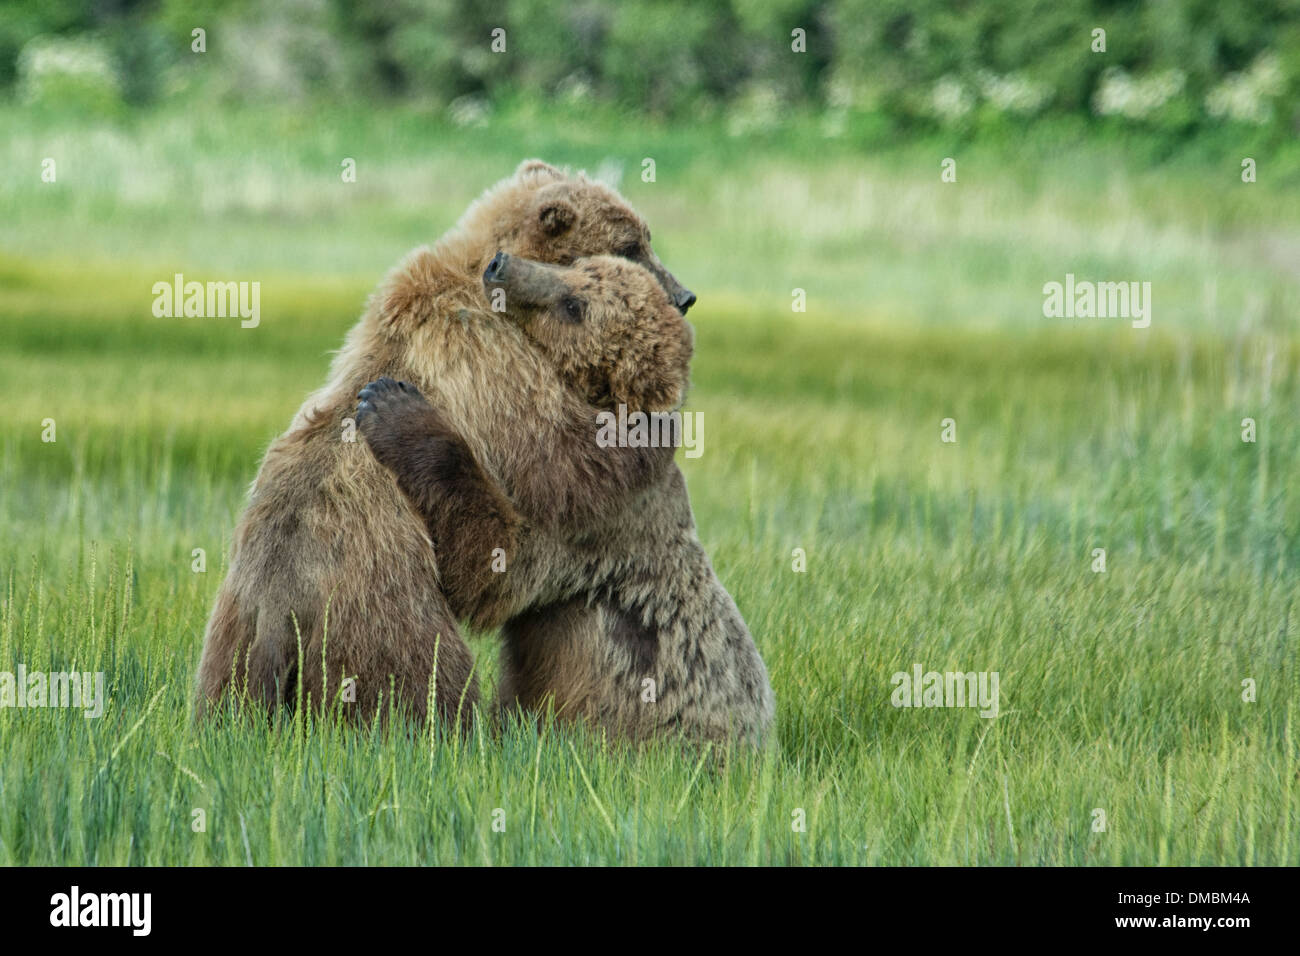 Grizzly Bear Yearling Cubs, Ursus arctos, hugging during a bout of play fighting, Lake Clark National Park, Alaska, USA - Stock Image